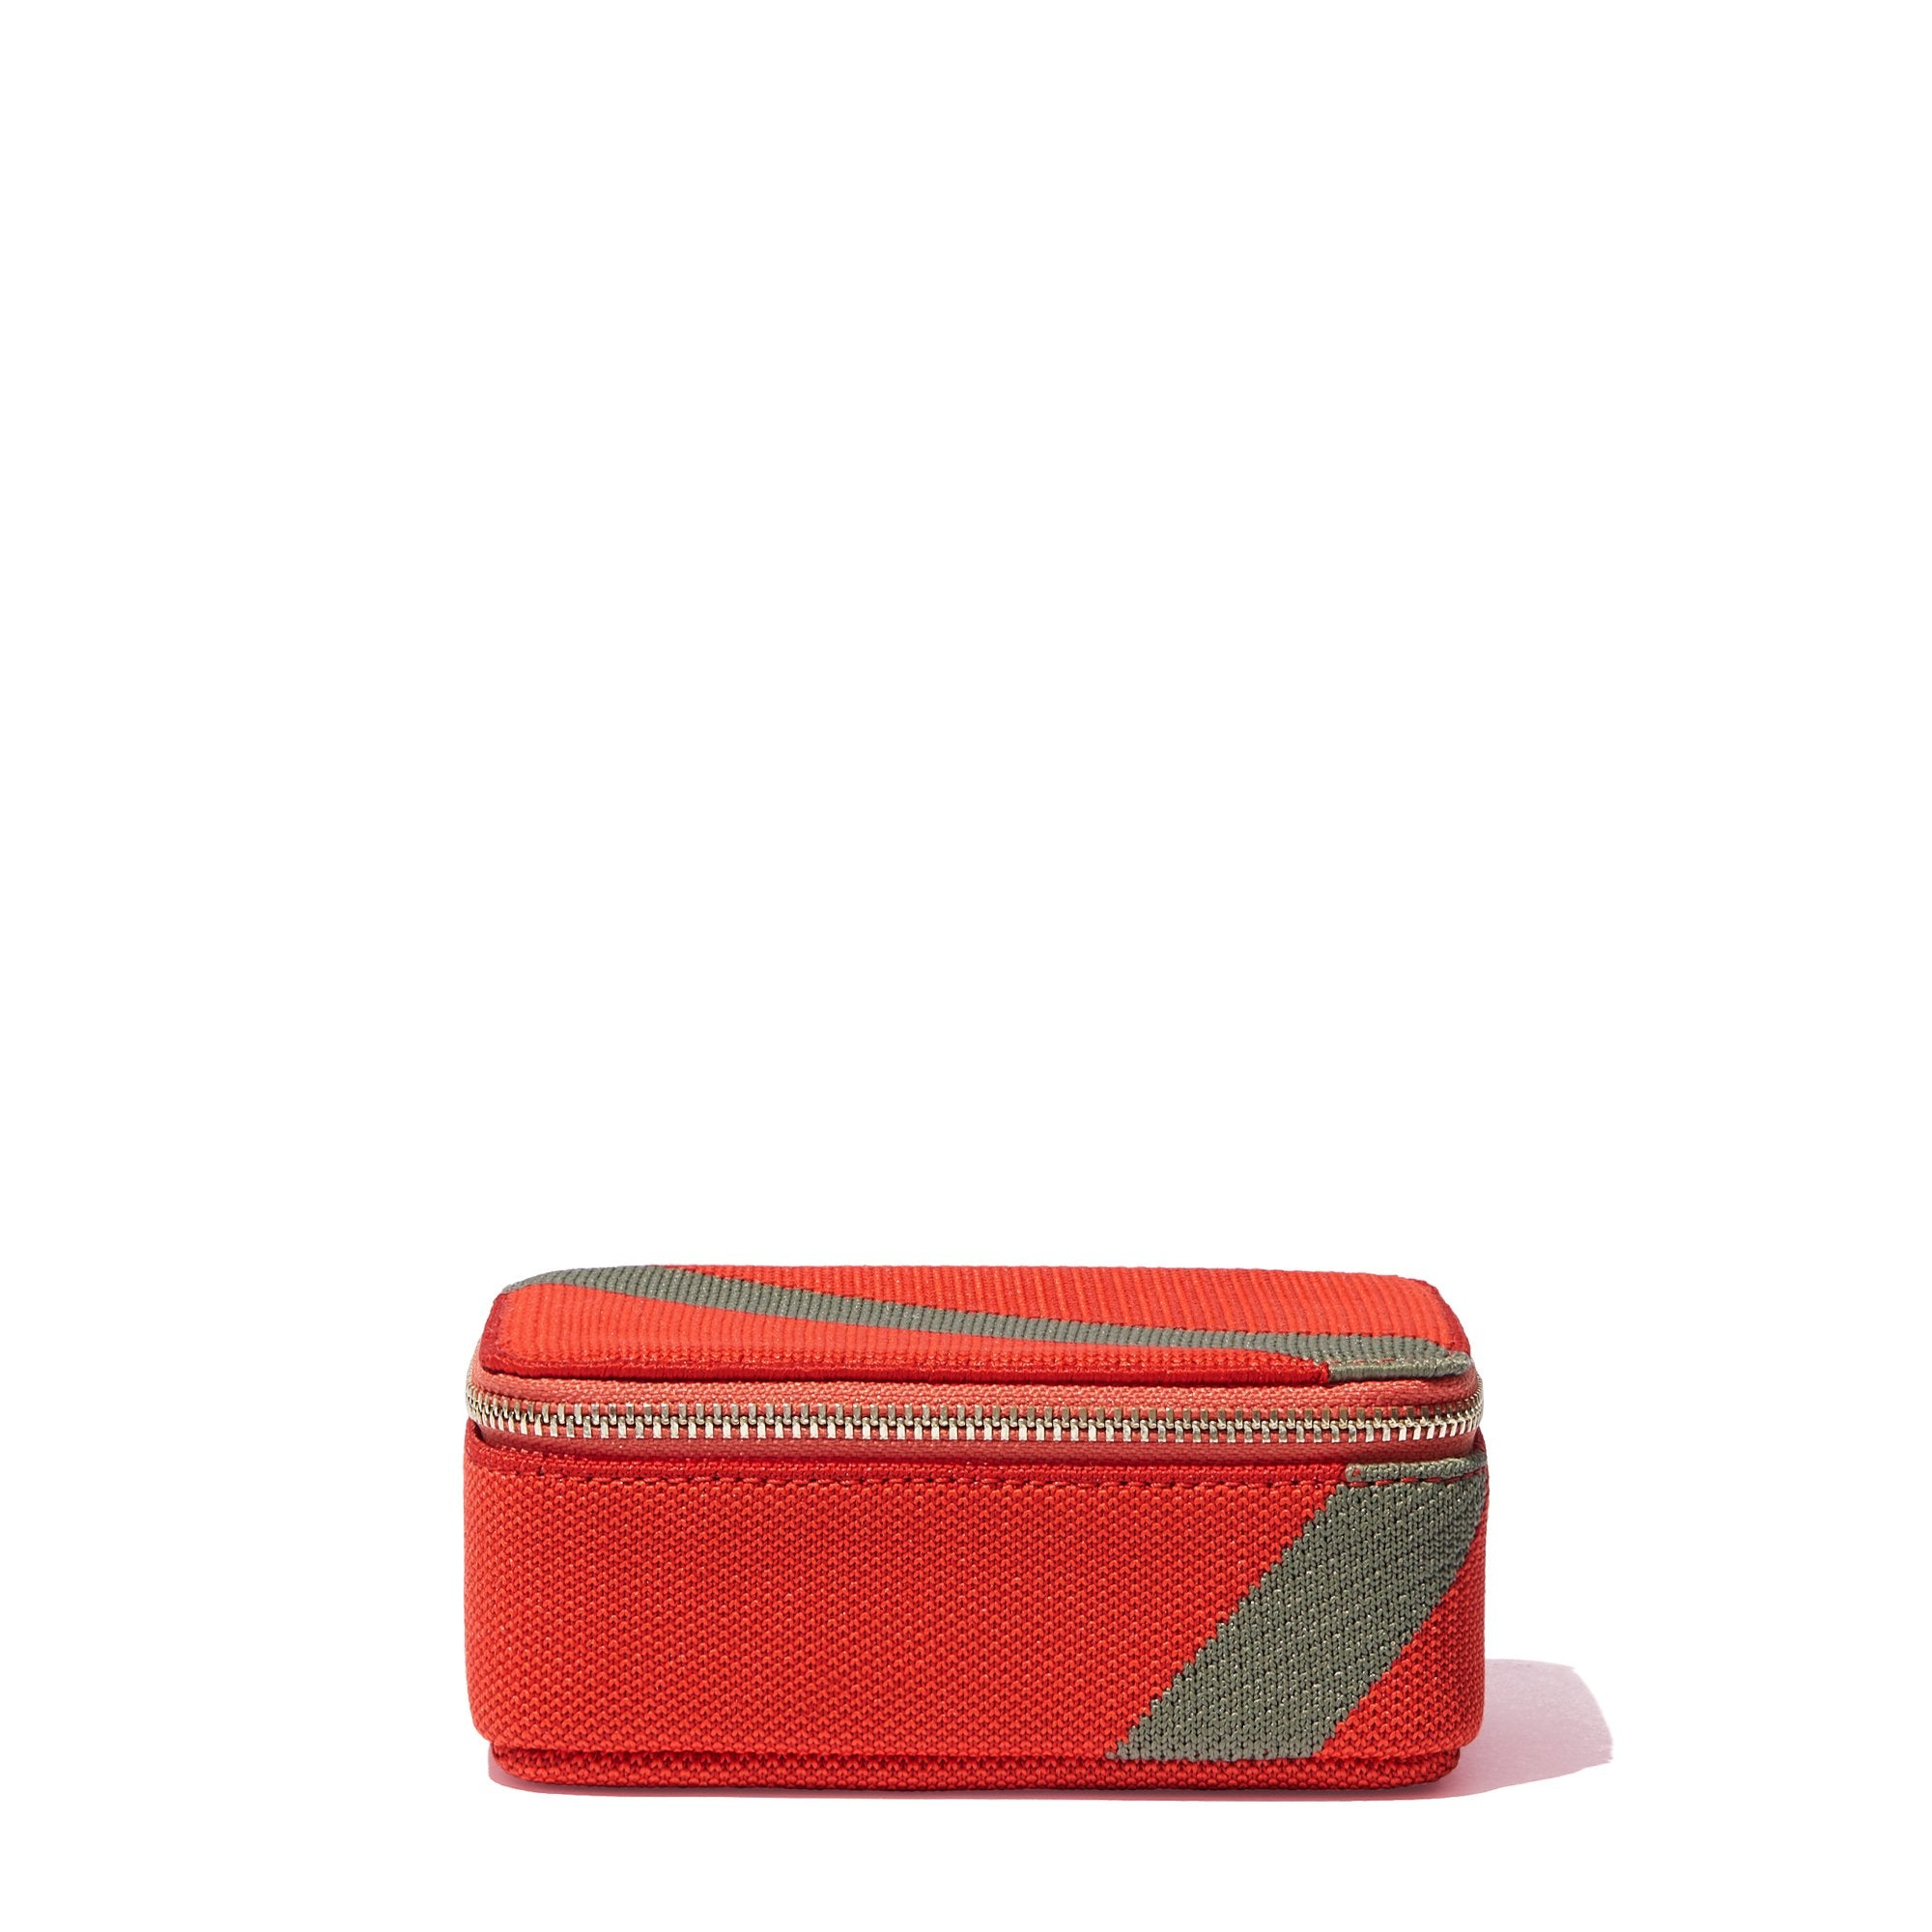 The Mini Catchall in Bright Poppy shown from the side.